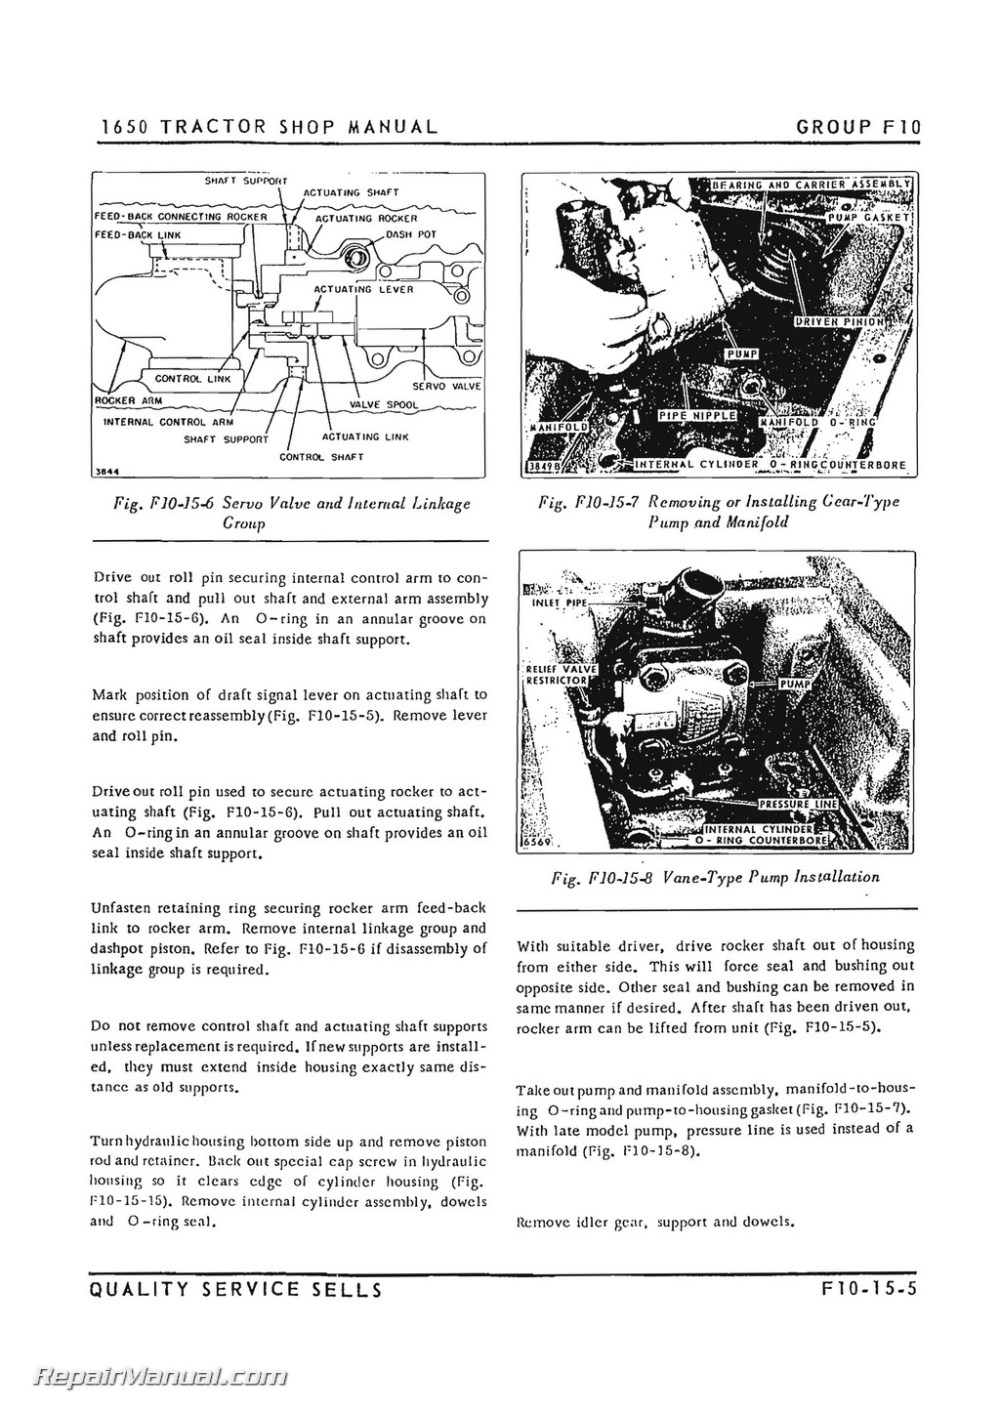 medium resolution of oliver 1650 1655 2 78 4 78 tractor service manual rh repairmanual com oliver tractor wiring diagram older oliver 770 hydraulic unit for parts